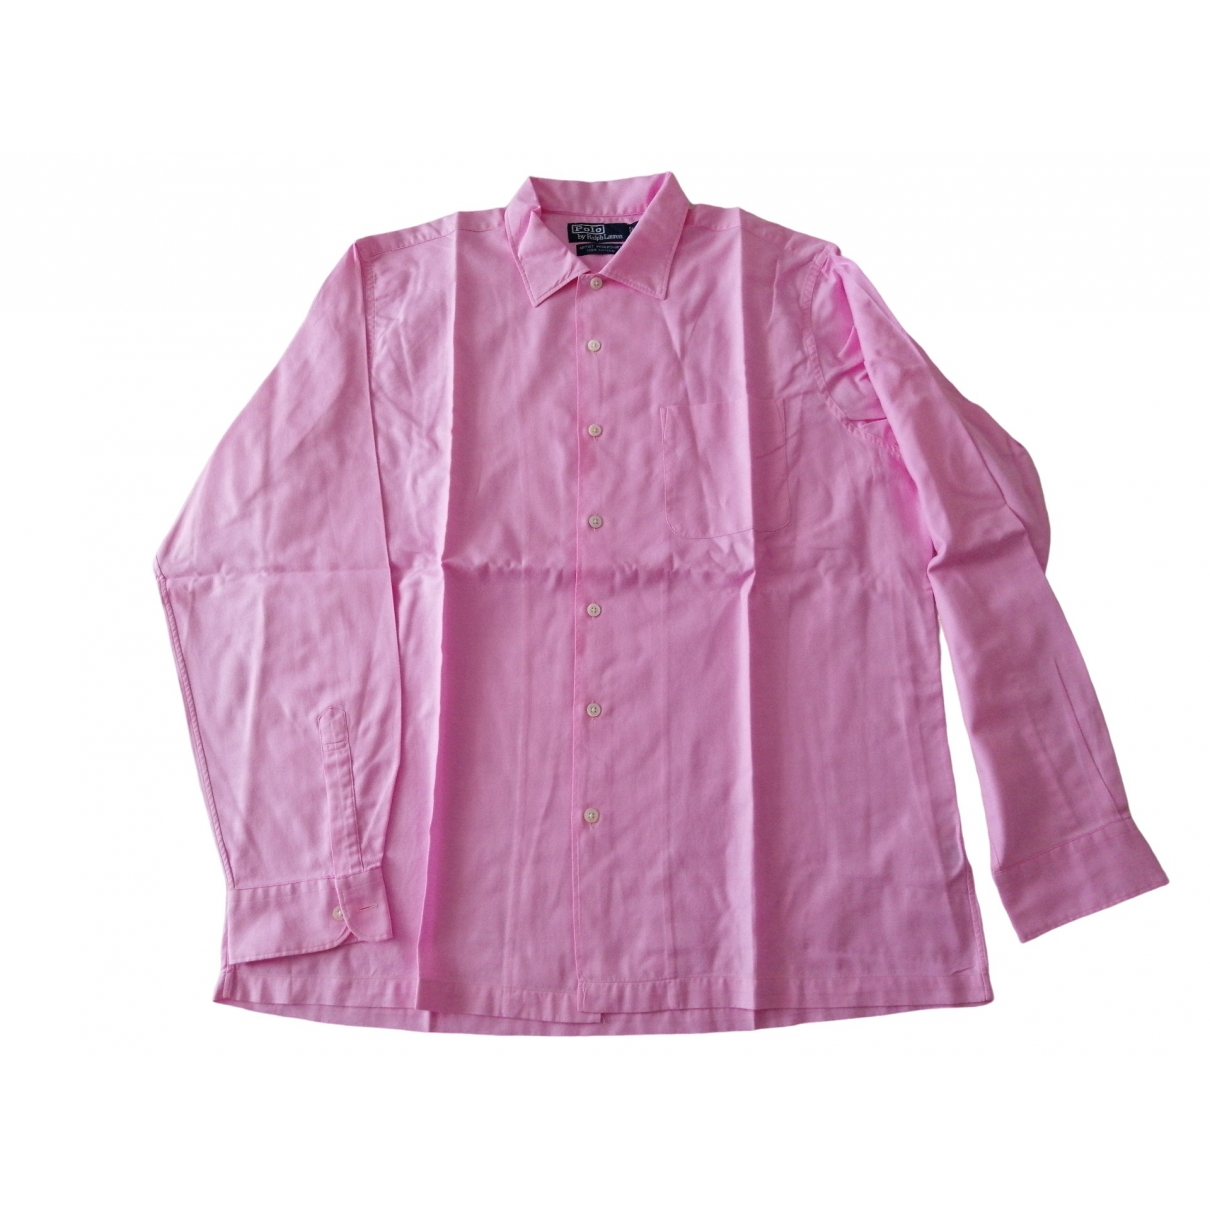 Polo Ralph Lauren \N Pink Cotton Shirts for Men M International